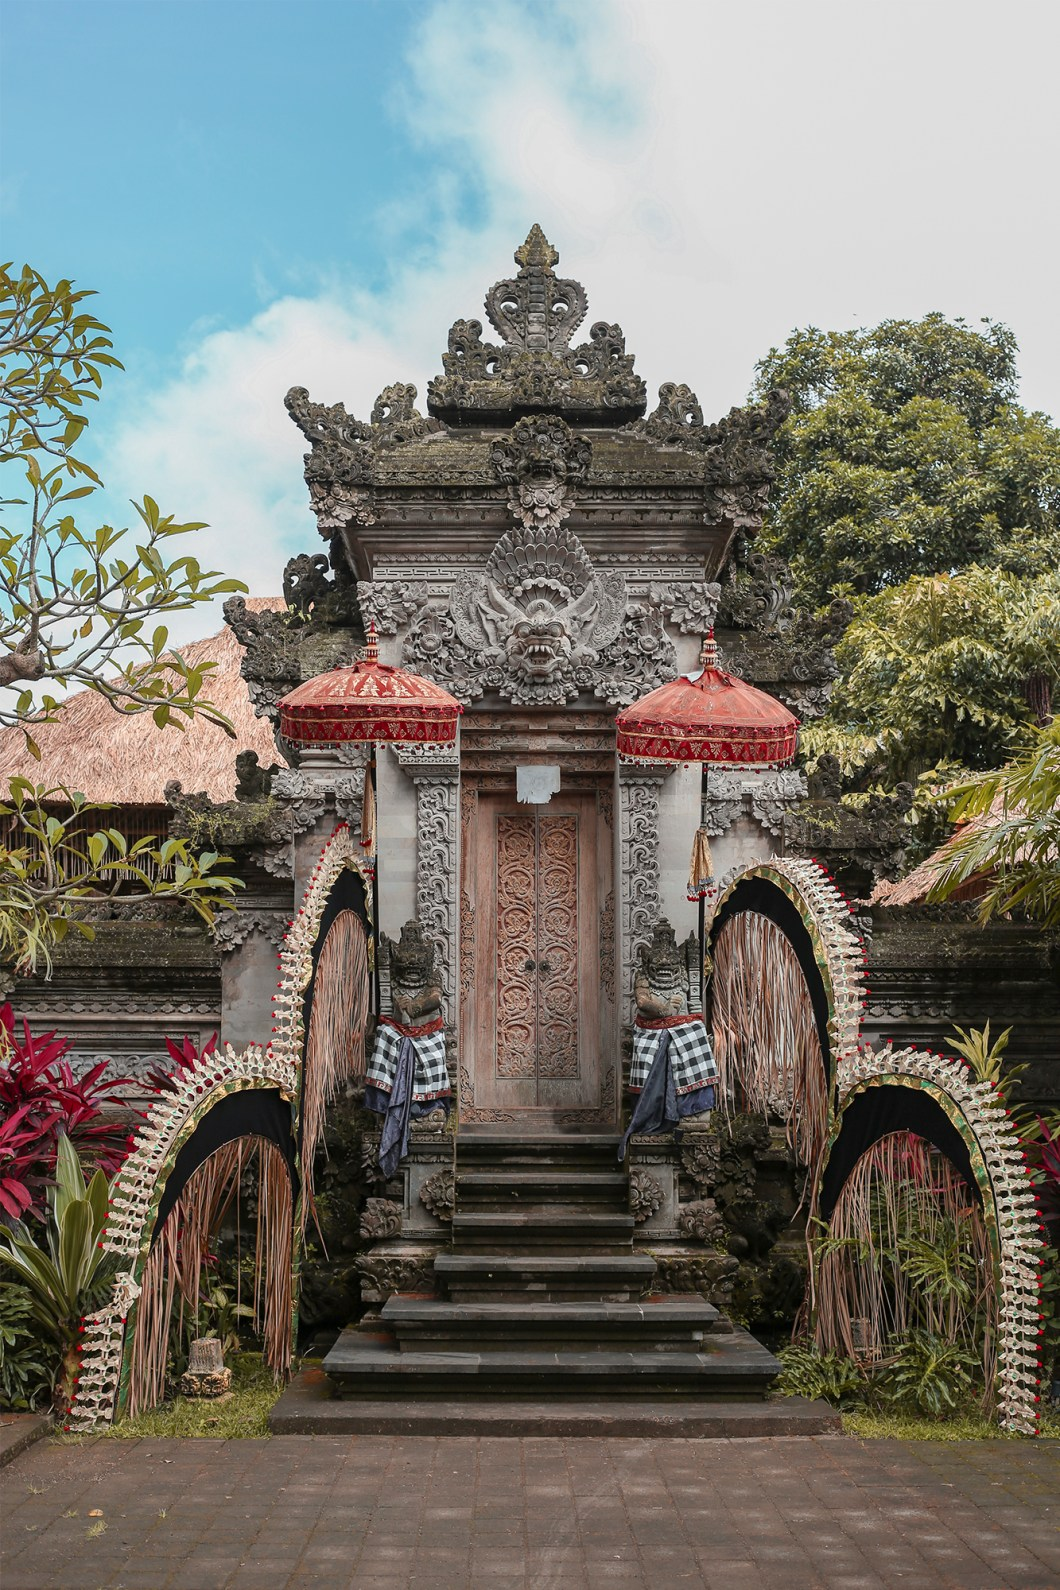 Bali Indonesia   How Far From Home